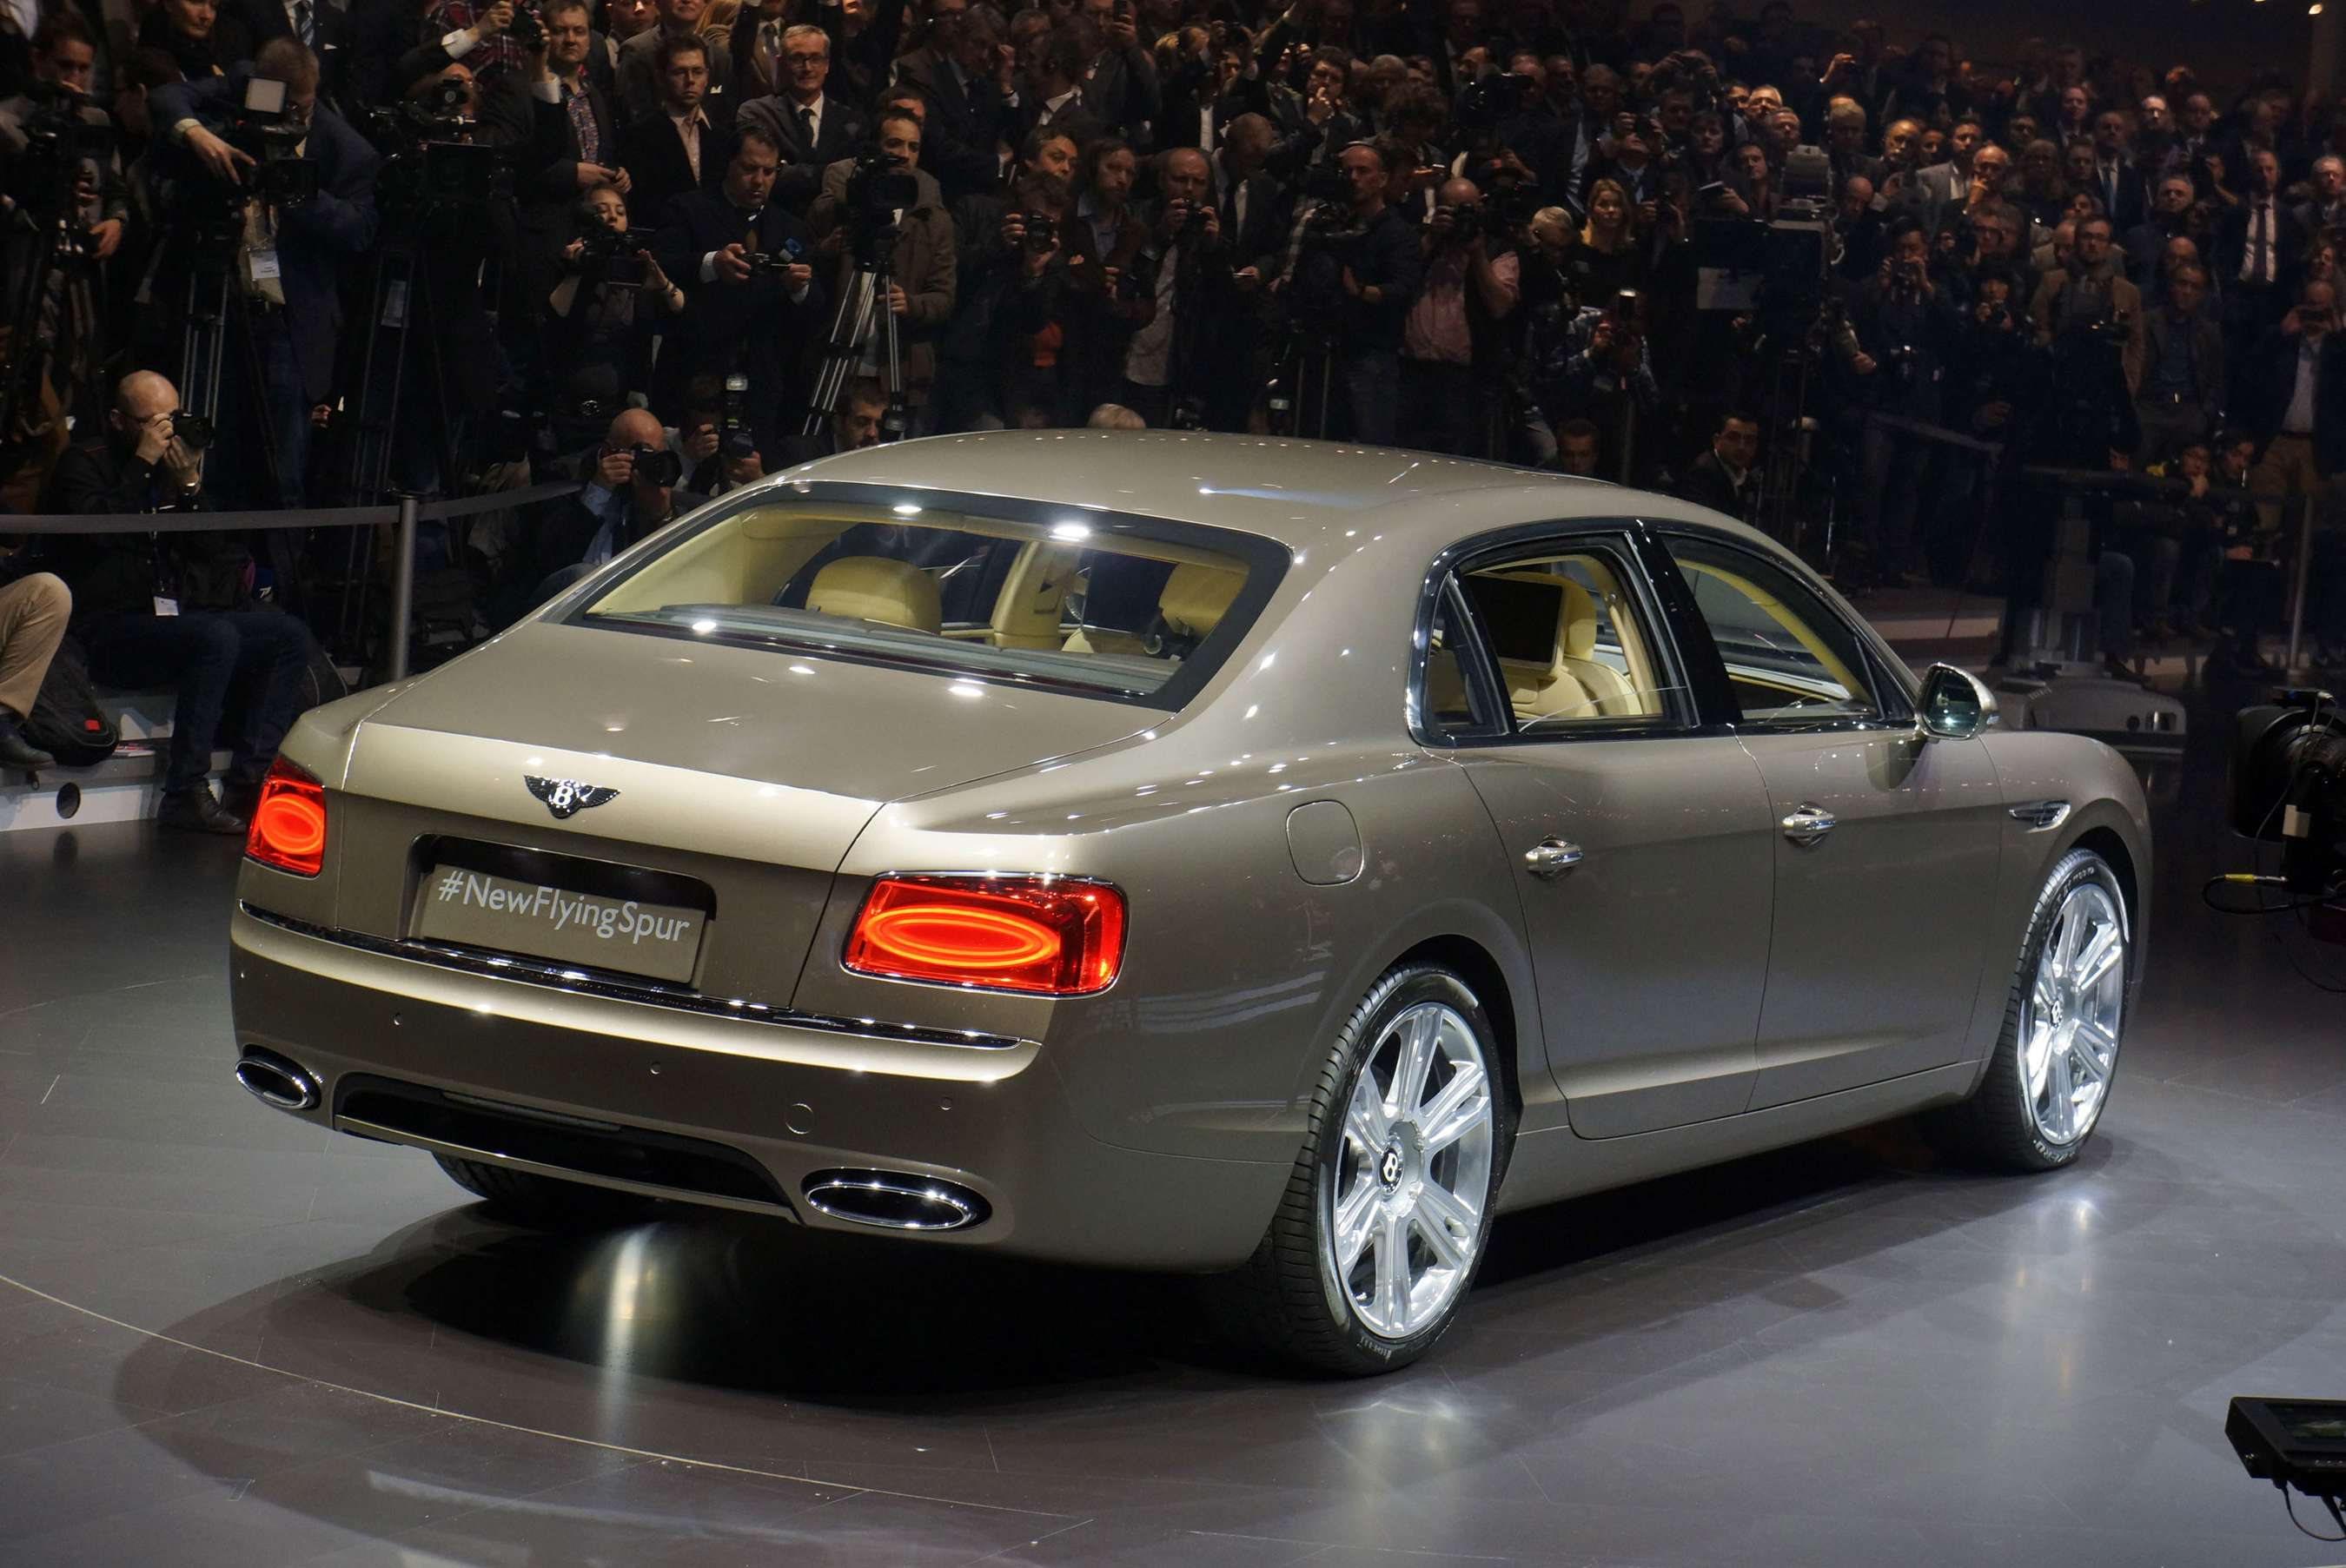 Bentley Flying Spur #8272408